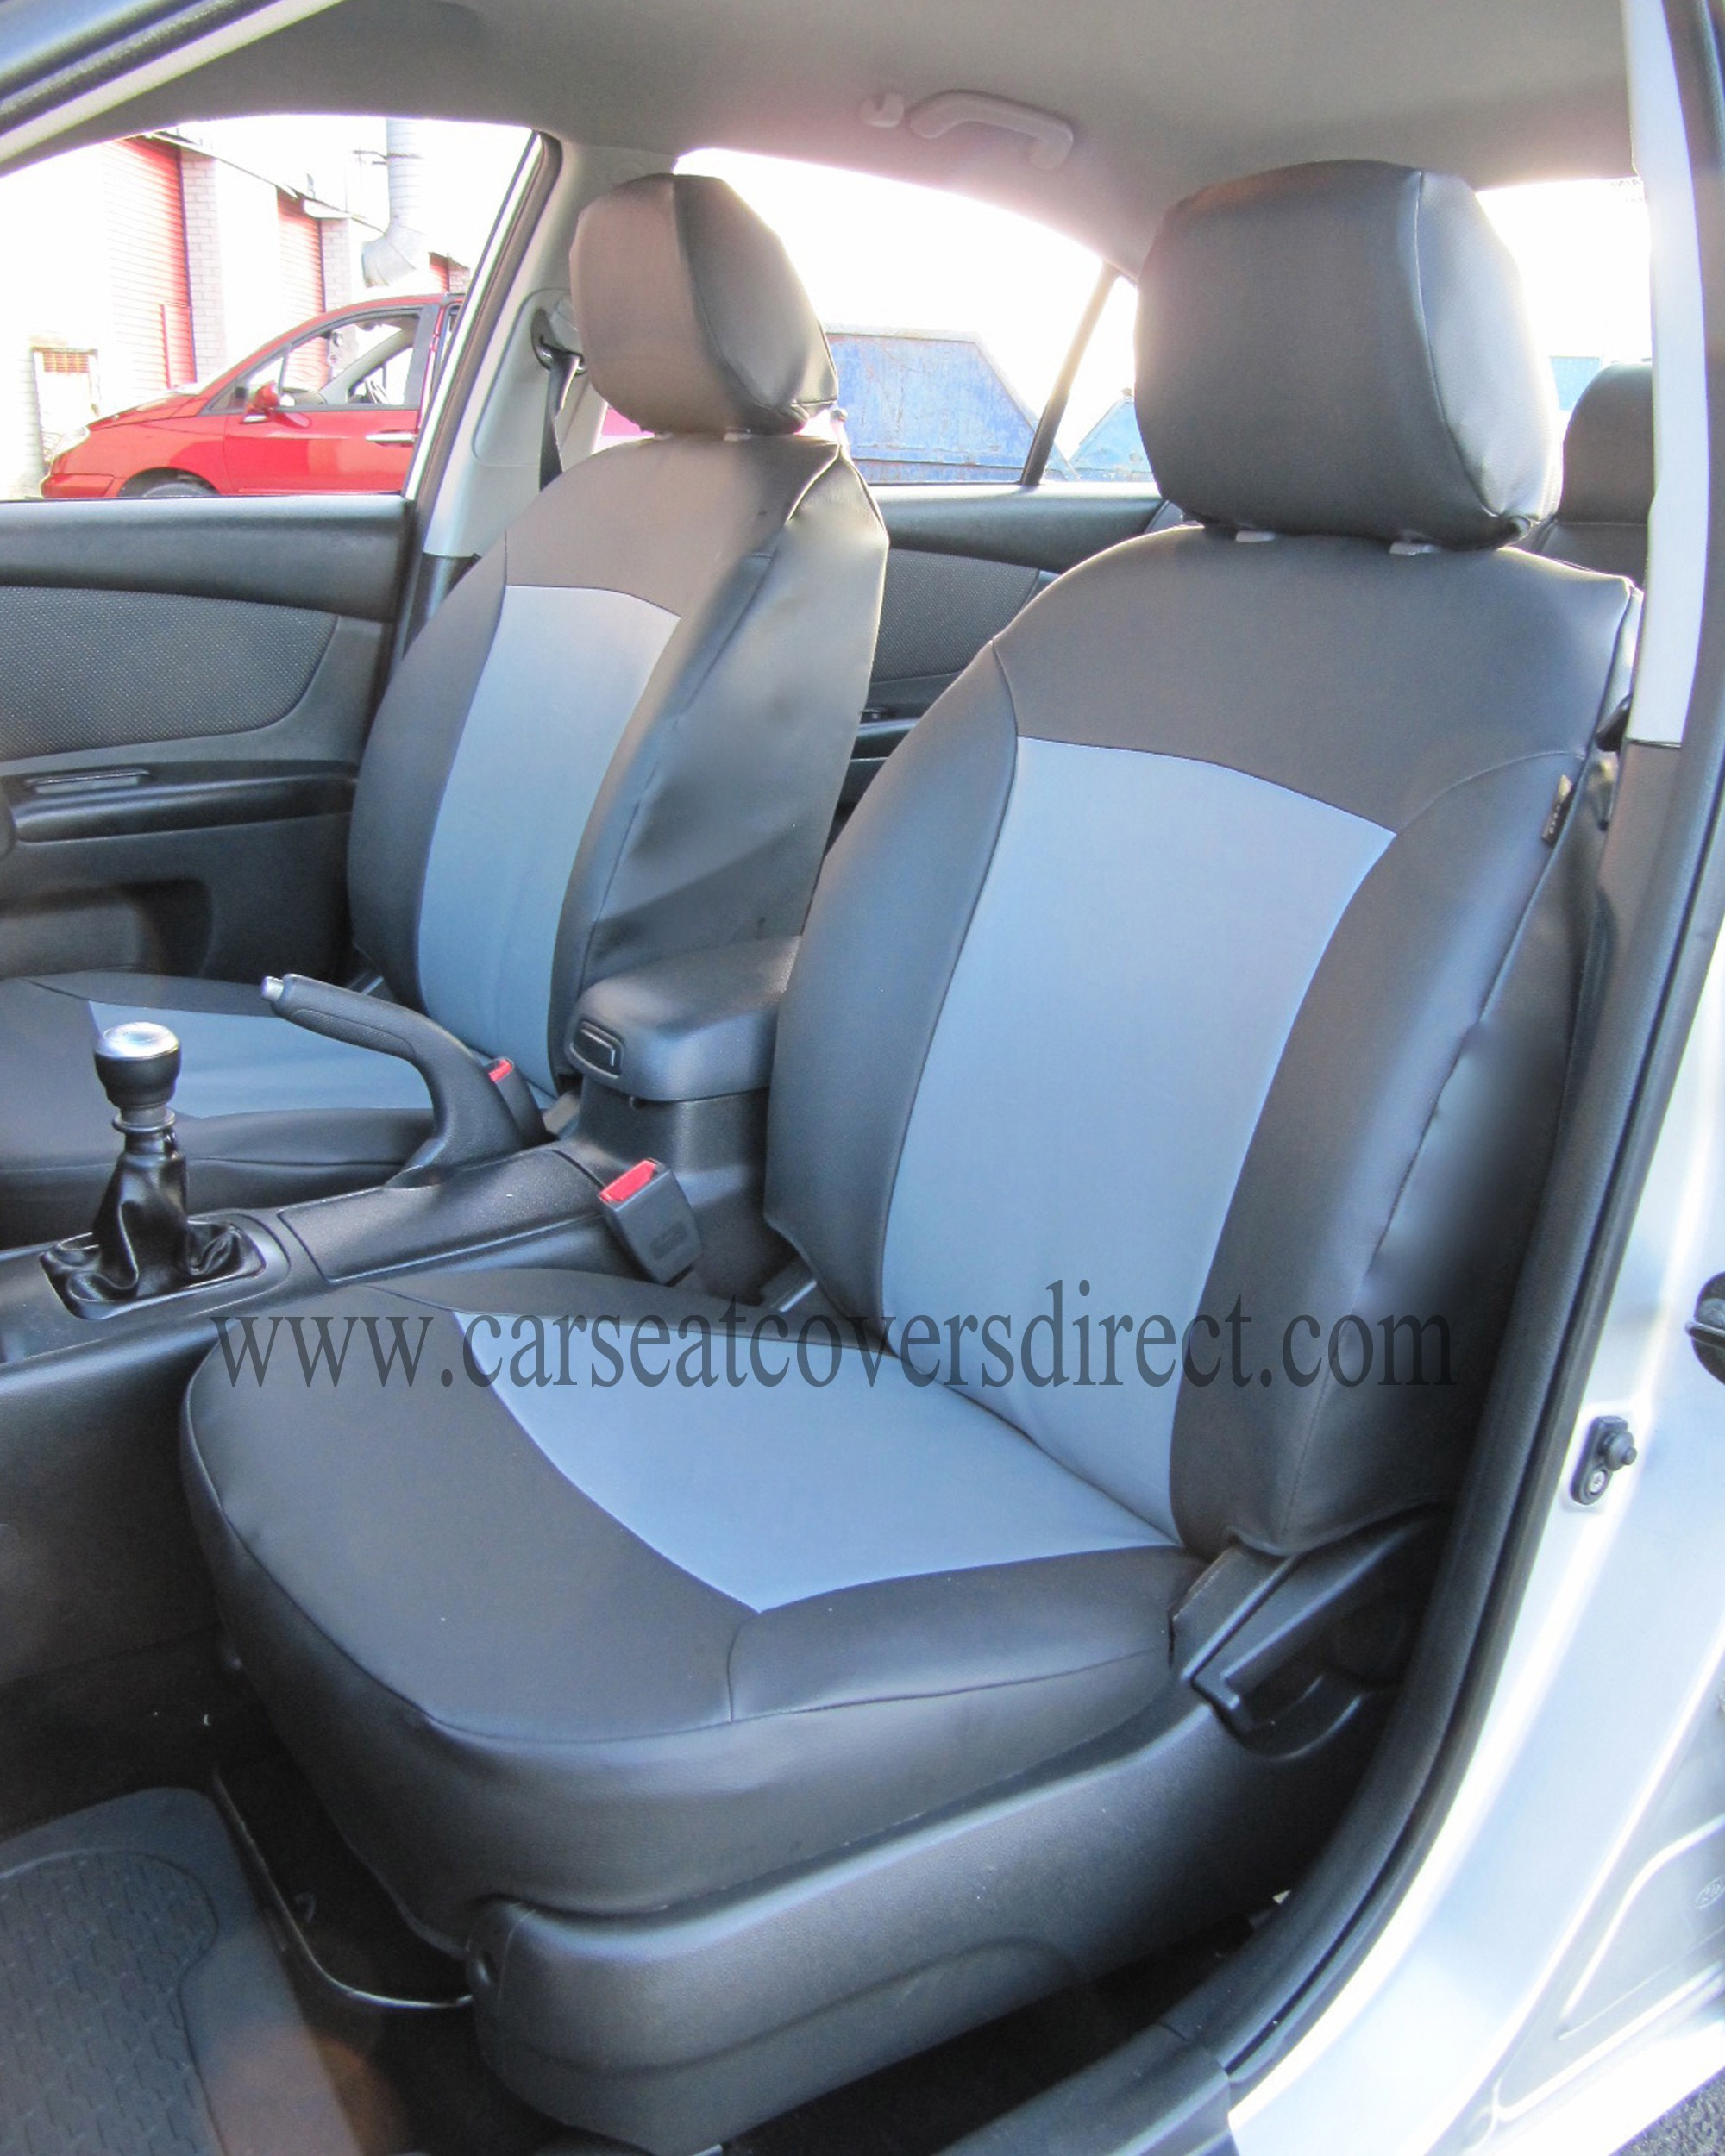 KIA MAGENTIS seat covers